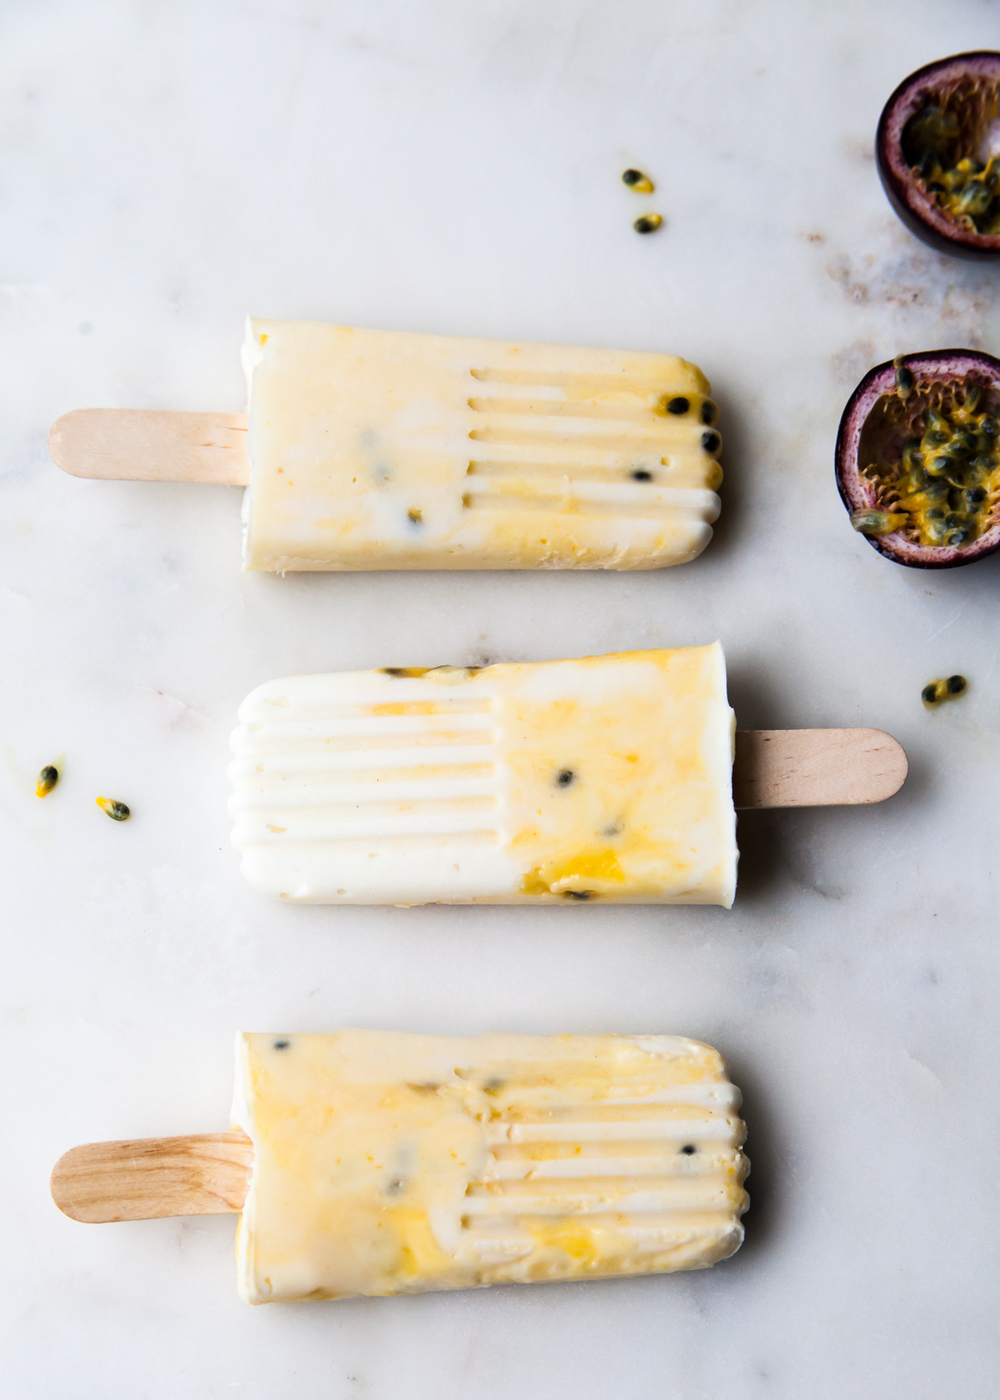 Passion Fruit Popsicles for popsicle week!